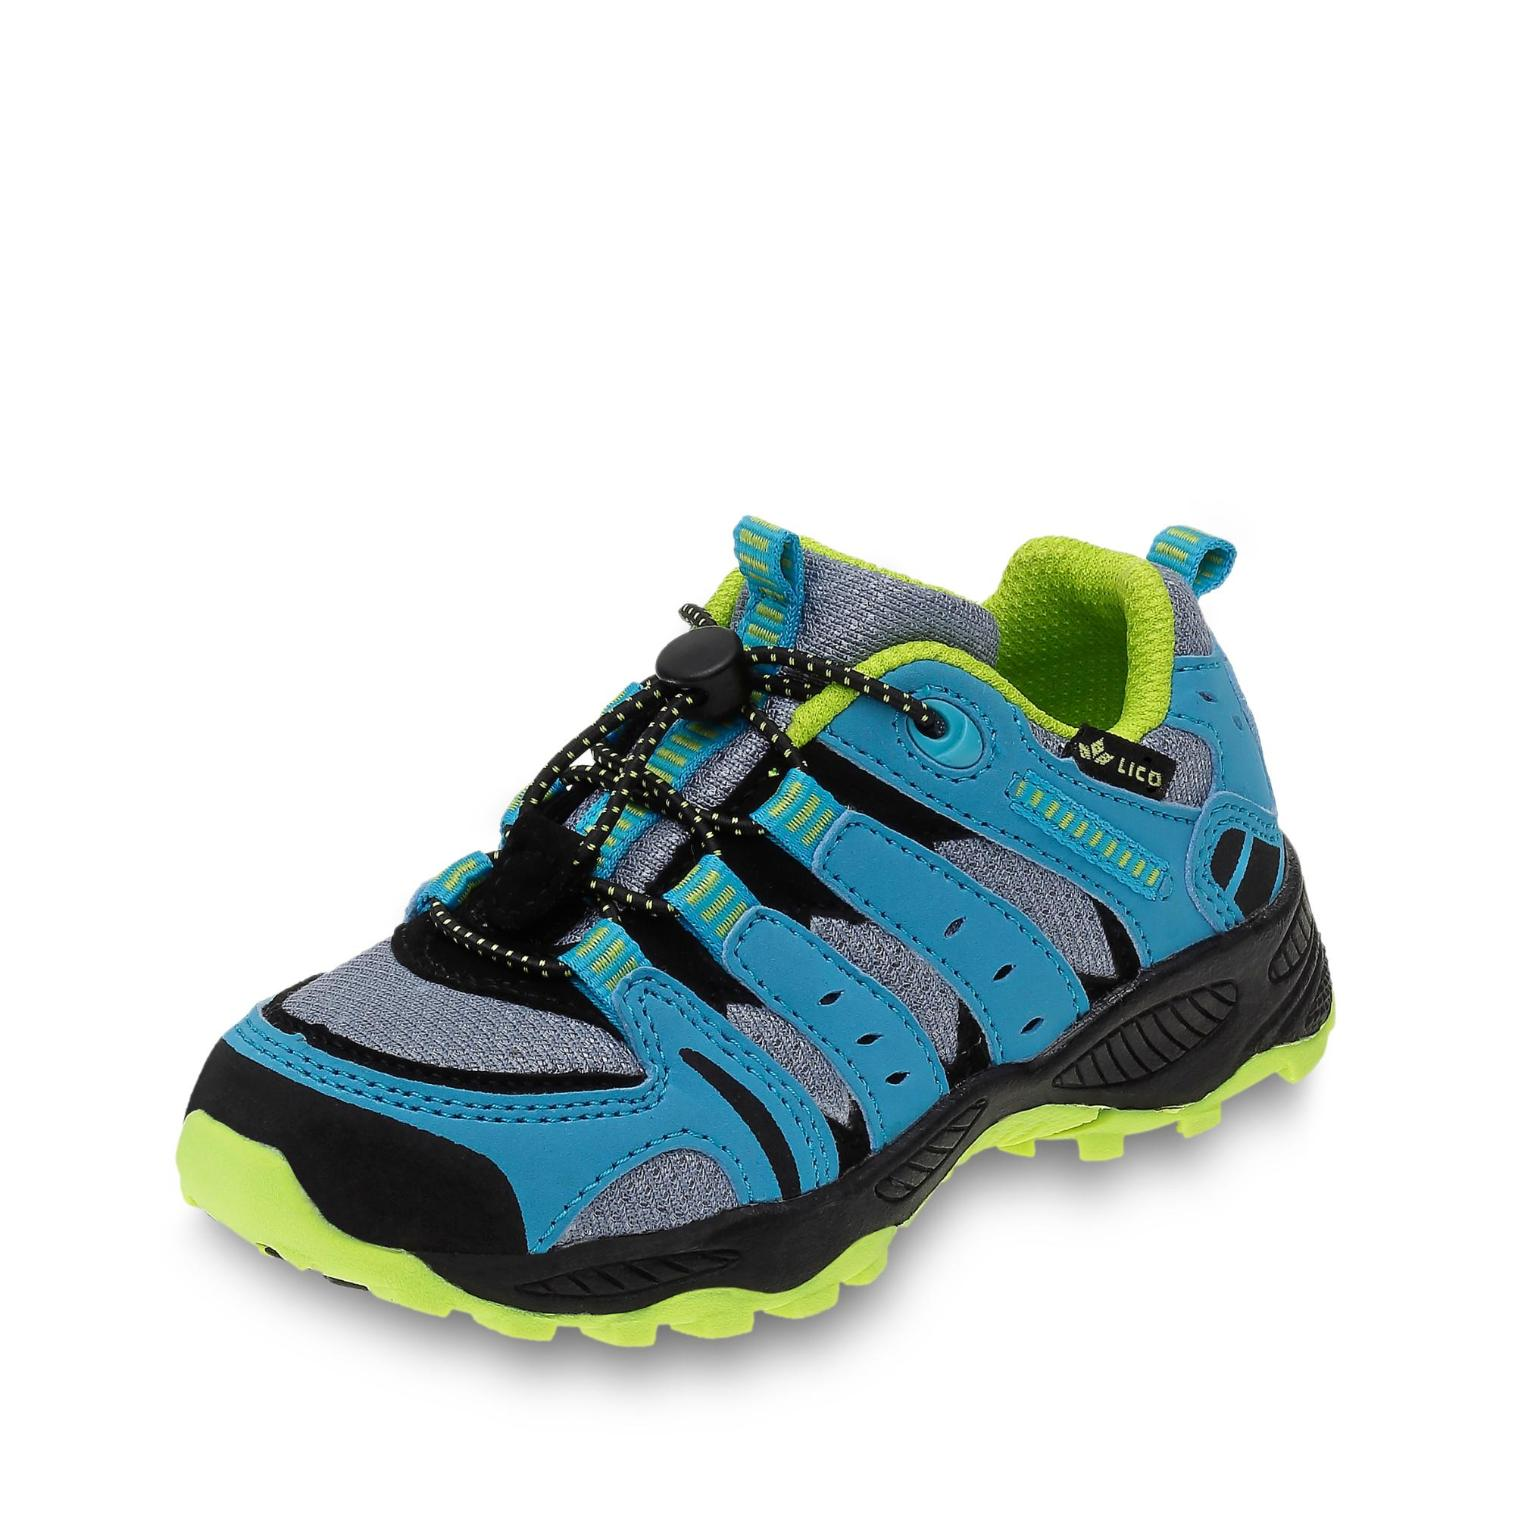 premium selection 74868 f2367 Lico Fremont Outdoorschuh in Farbe türkis/grau um 8 ...